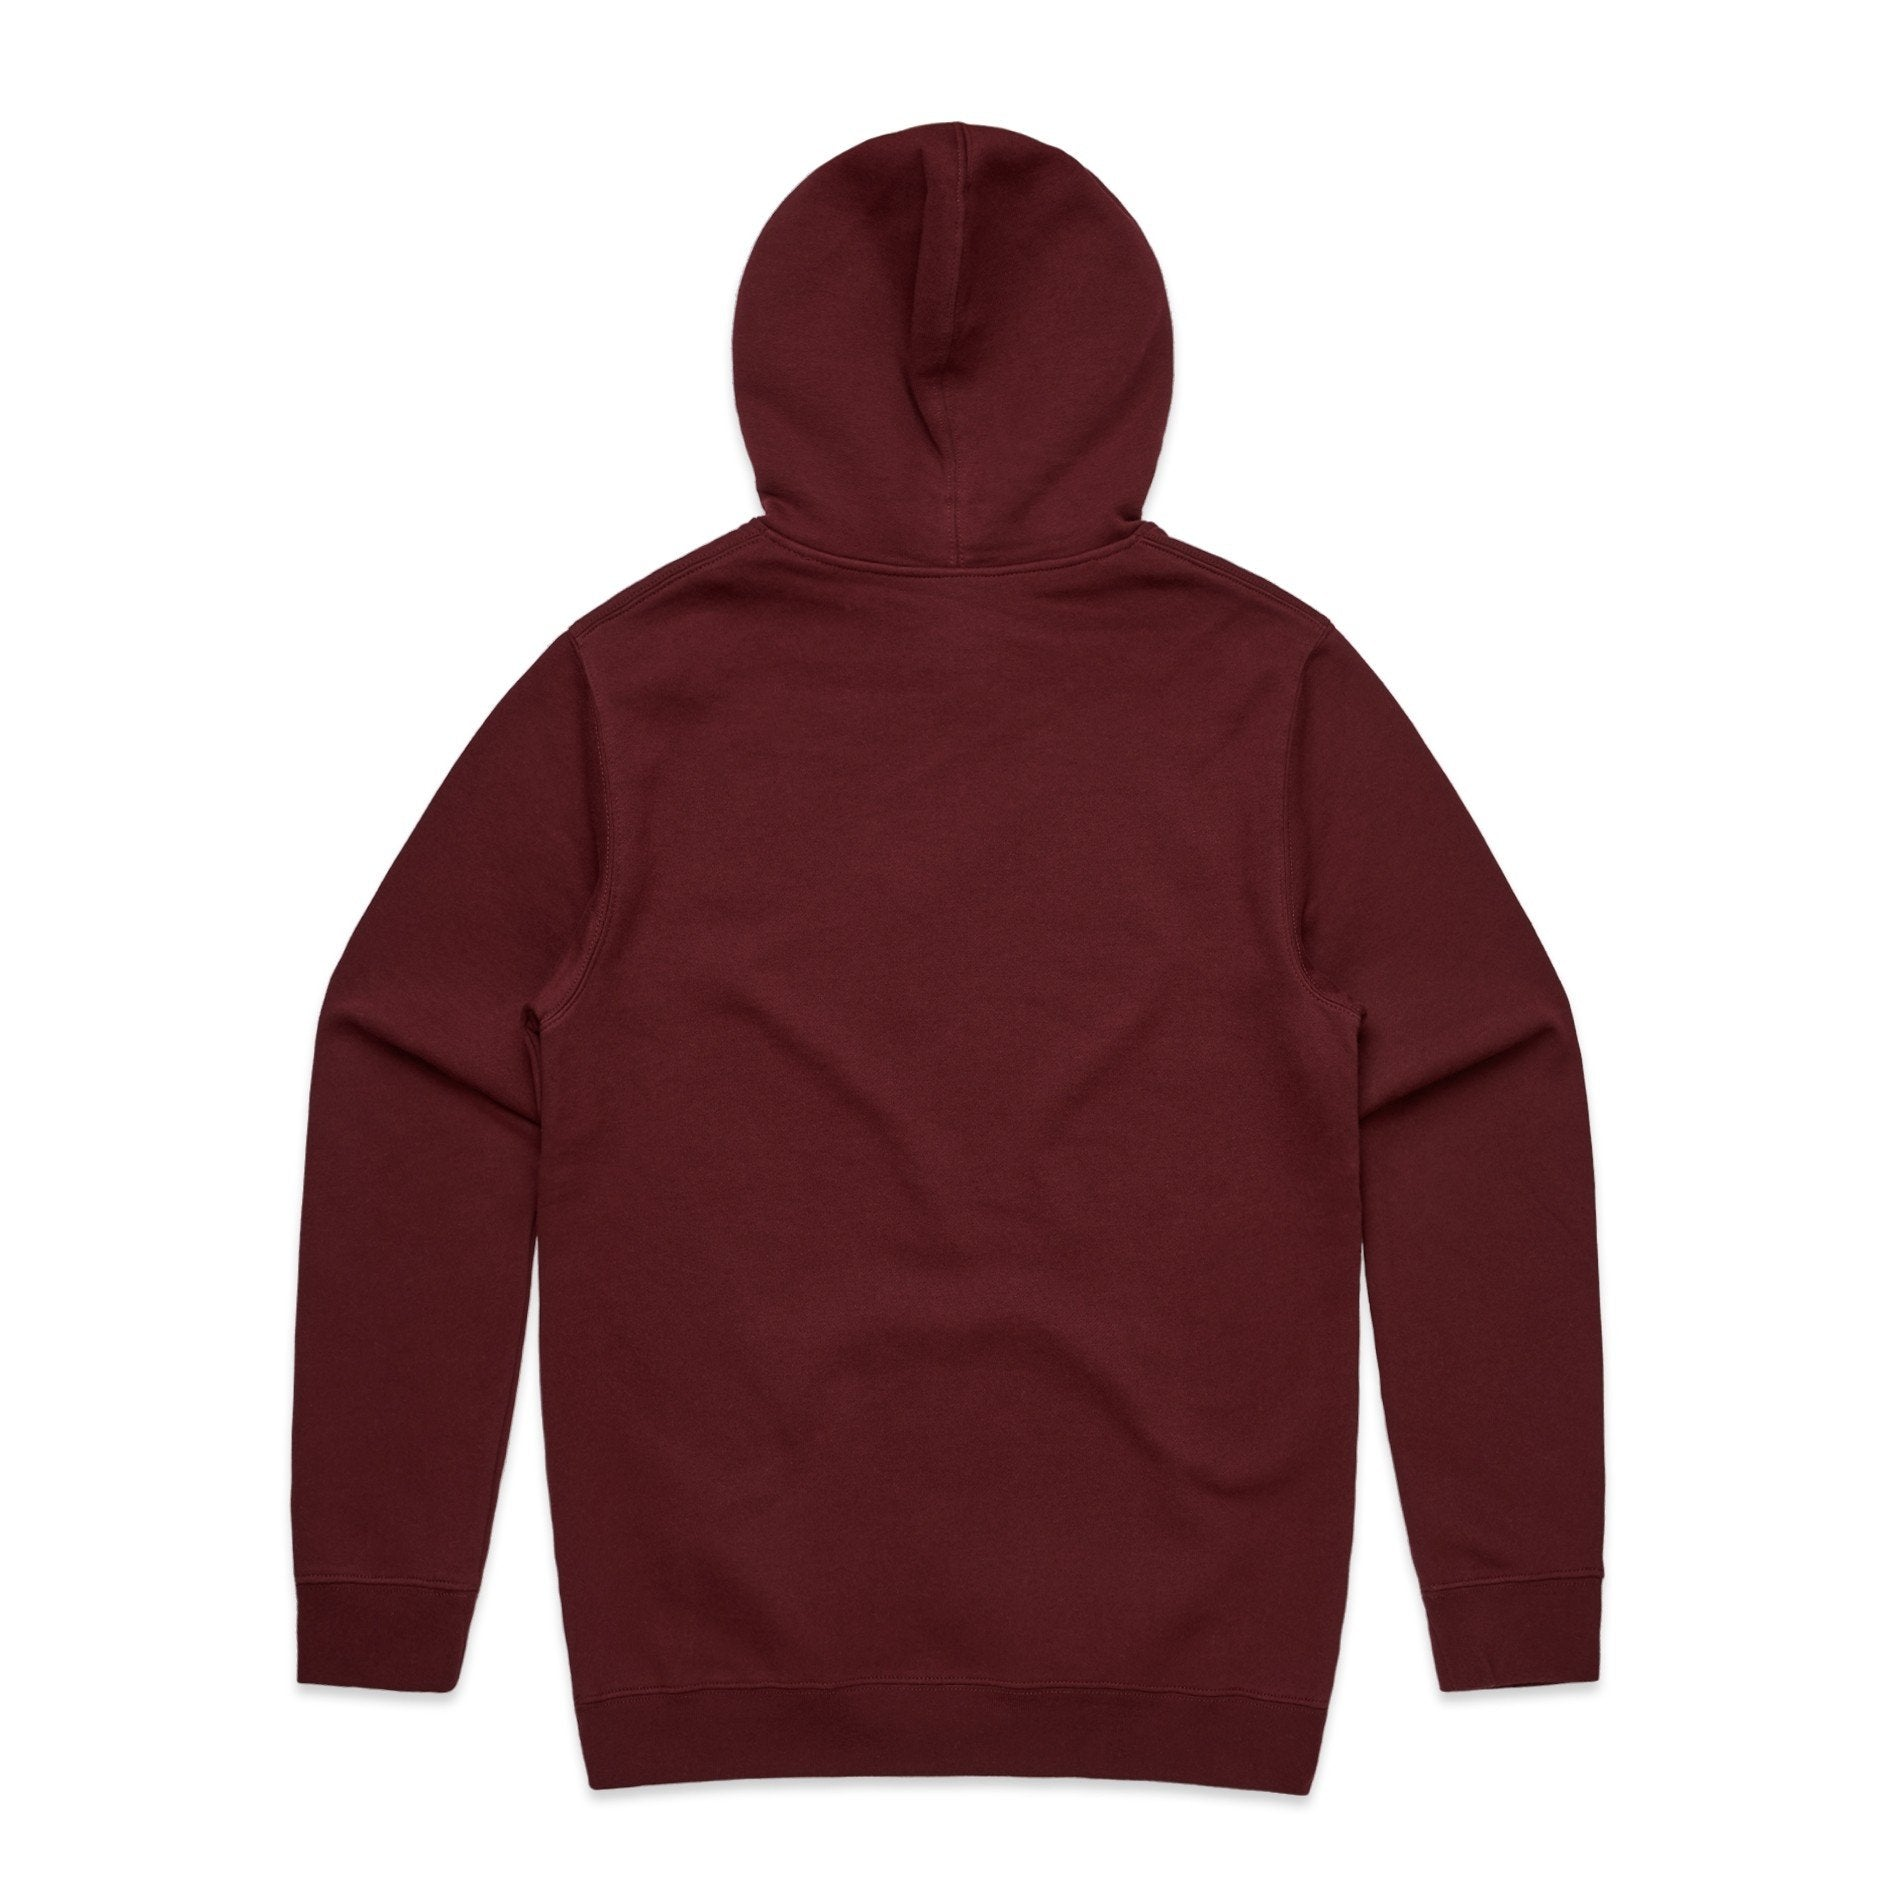 Wine Basic Hoodie with USA Flag